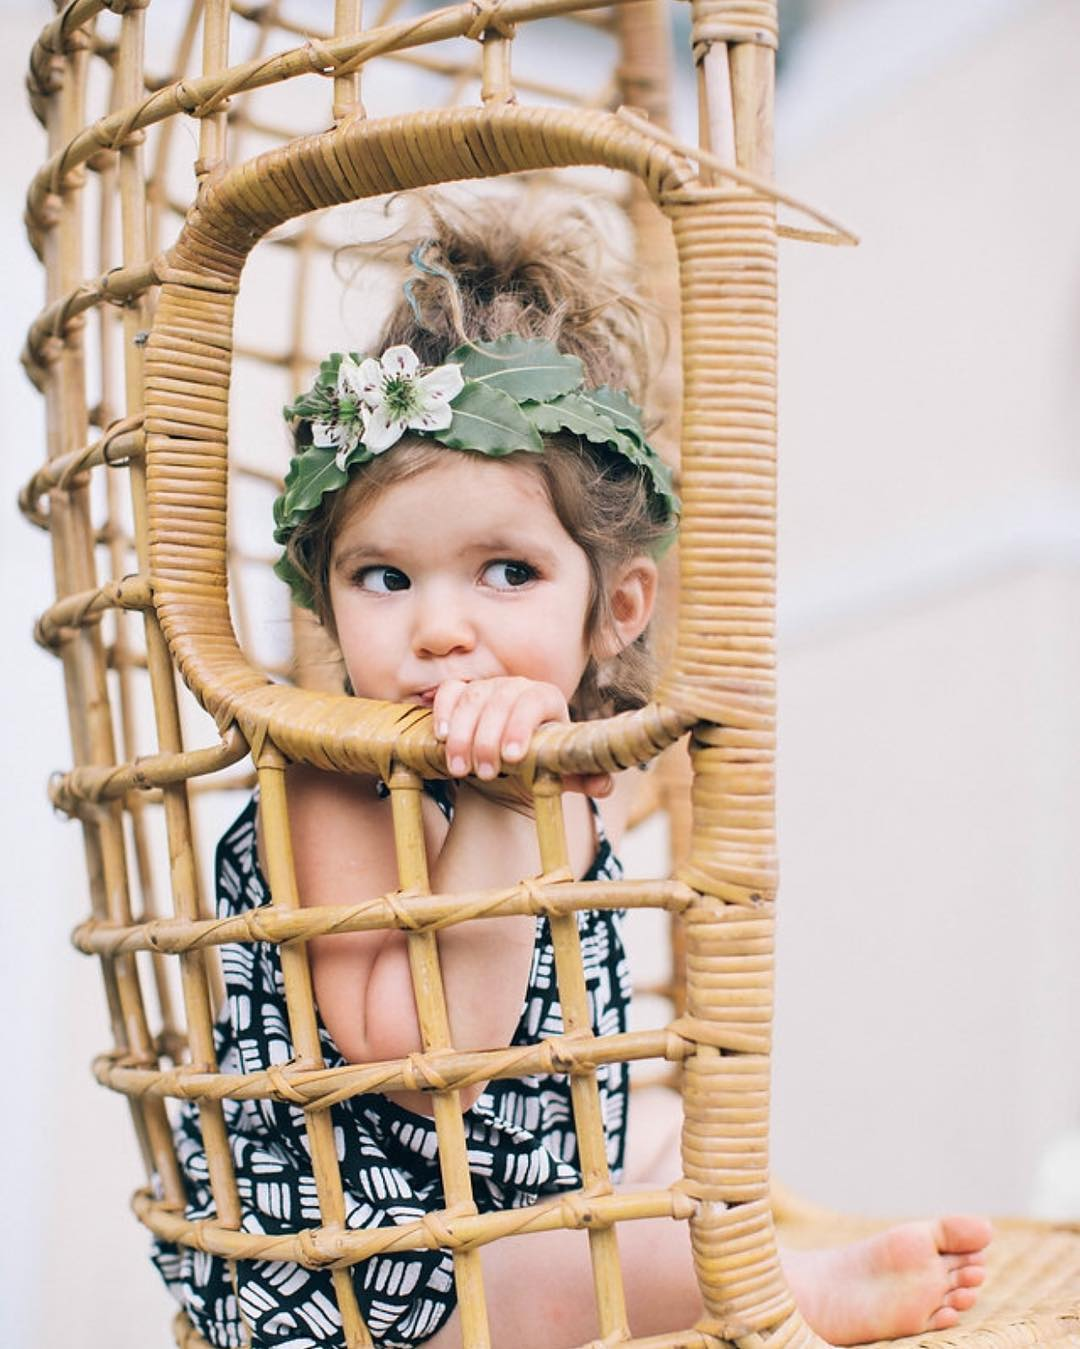 {patience} photo | @katepreftakes4  This child stole the show at this shoot. Patience you are a natural… #bohobabe #babymodel #flowergirl #flowercrown #vintagebaby #photoshoot #lovethiskid #wickerchair #tropical #lotusfloraldesigns #collaboration #getcreative